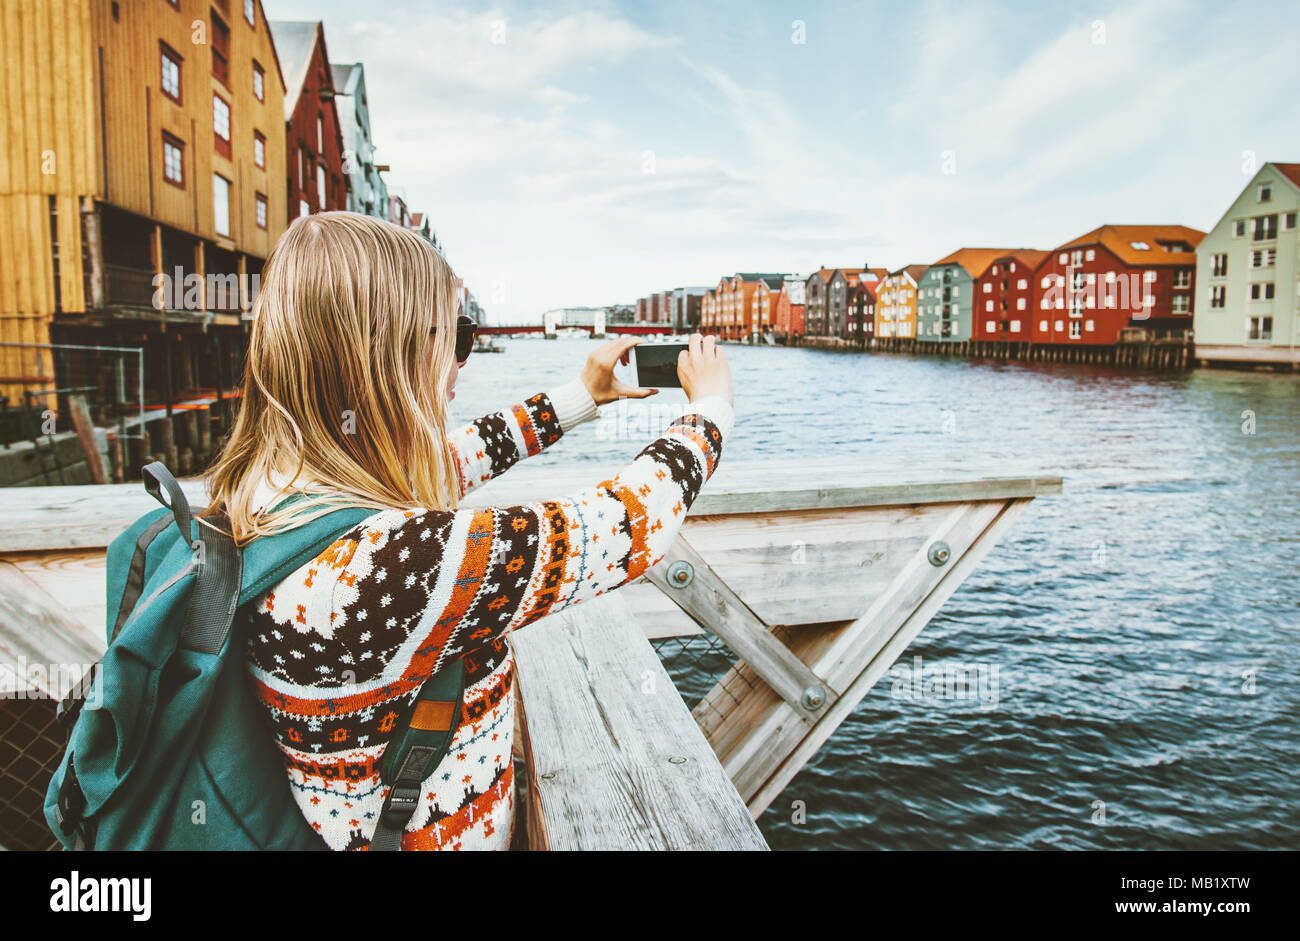 Tourist woman taking photo by smartphone sightseeing in Norway Lifestyle vacations outdoor scandinavian colorful houses landmarks Trondheim city  arch - Stock Image